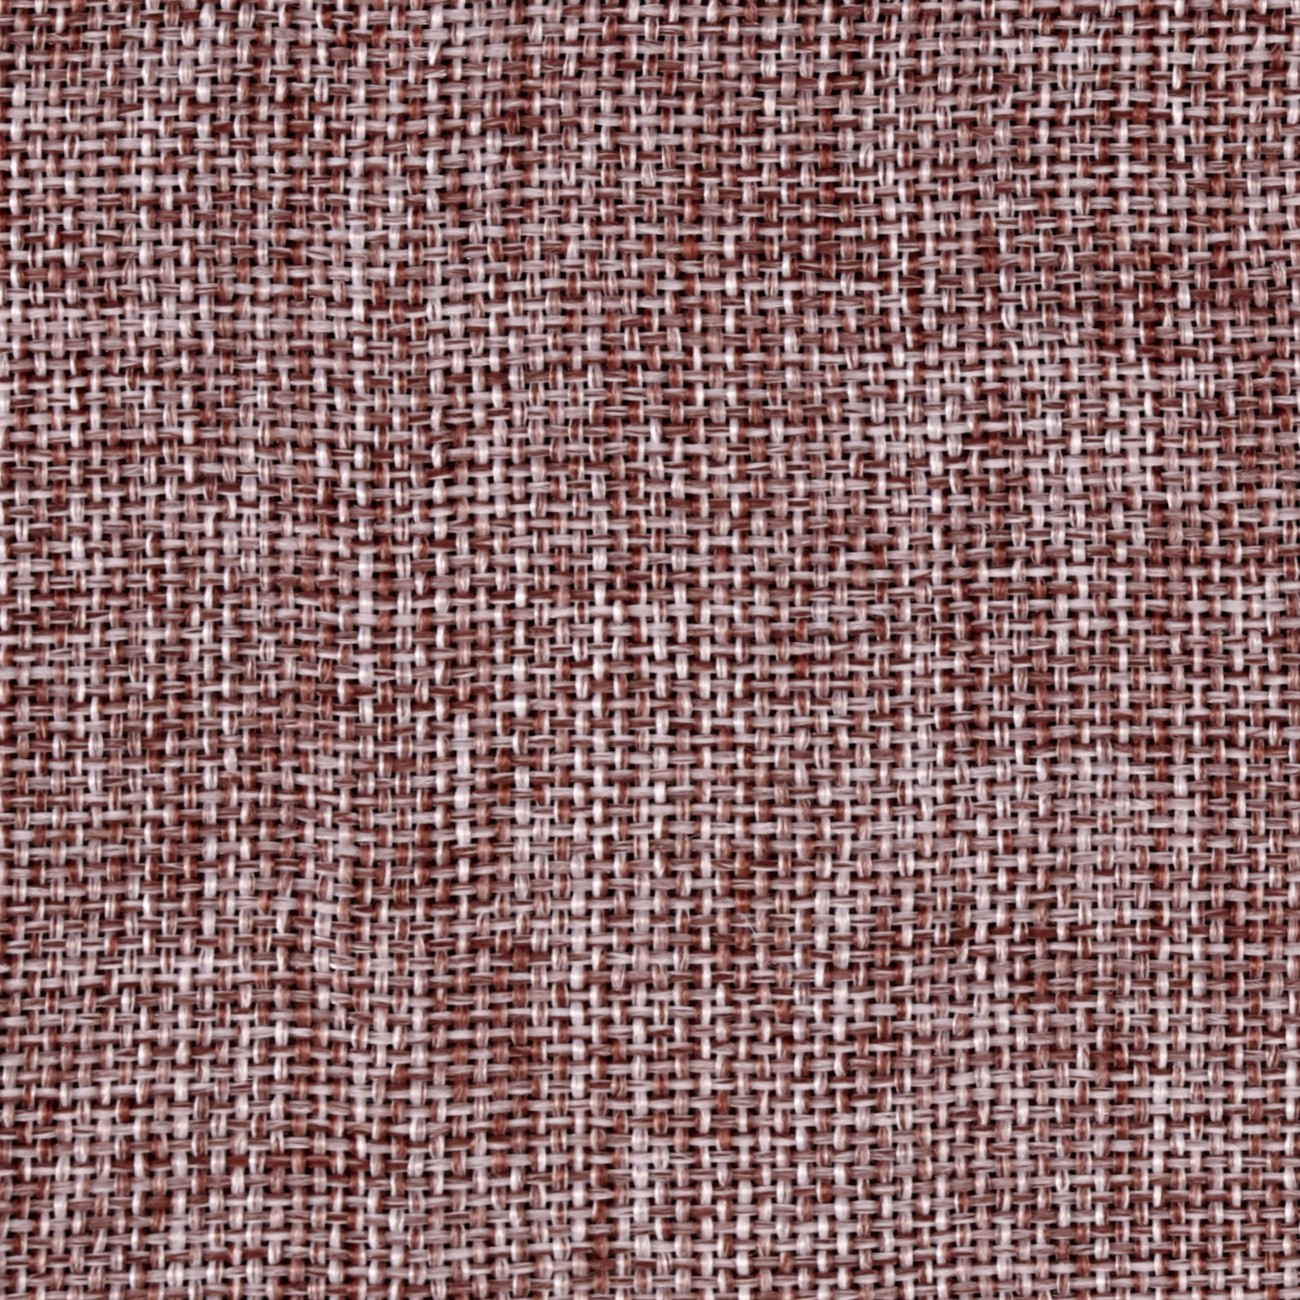 Vintage Poly Burlap Sepia Fabric by Ben in USA